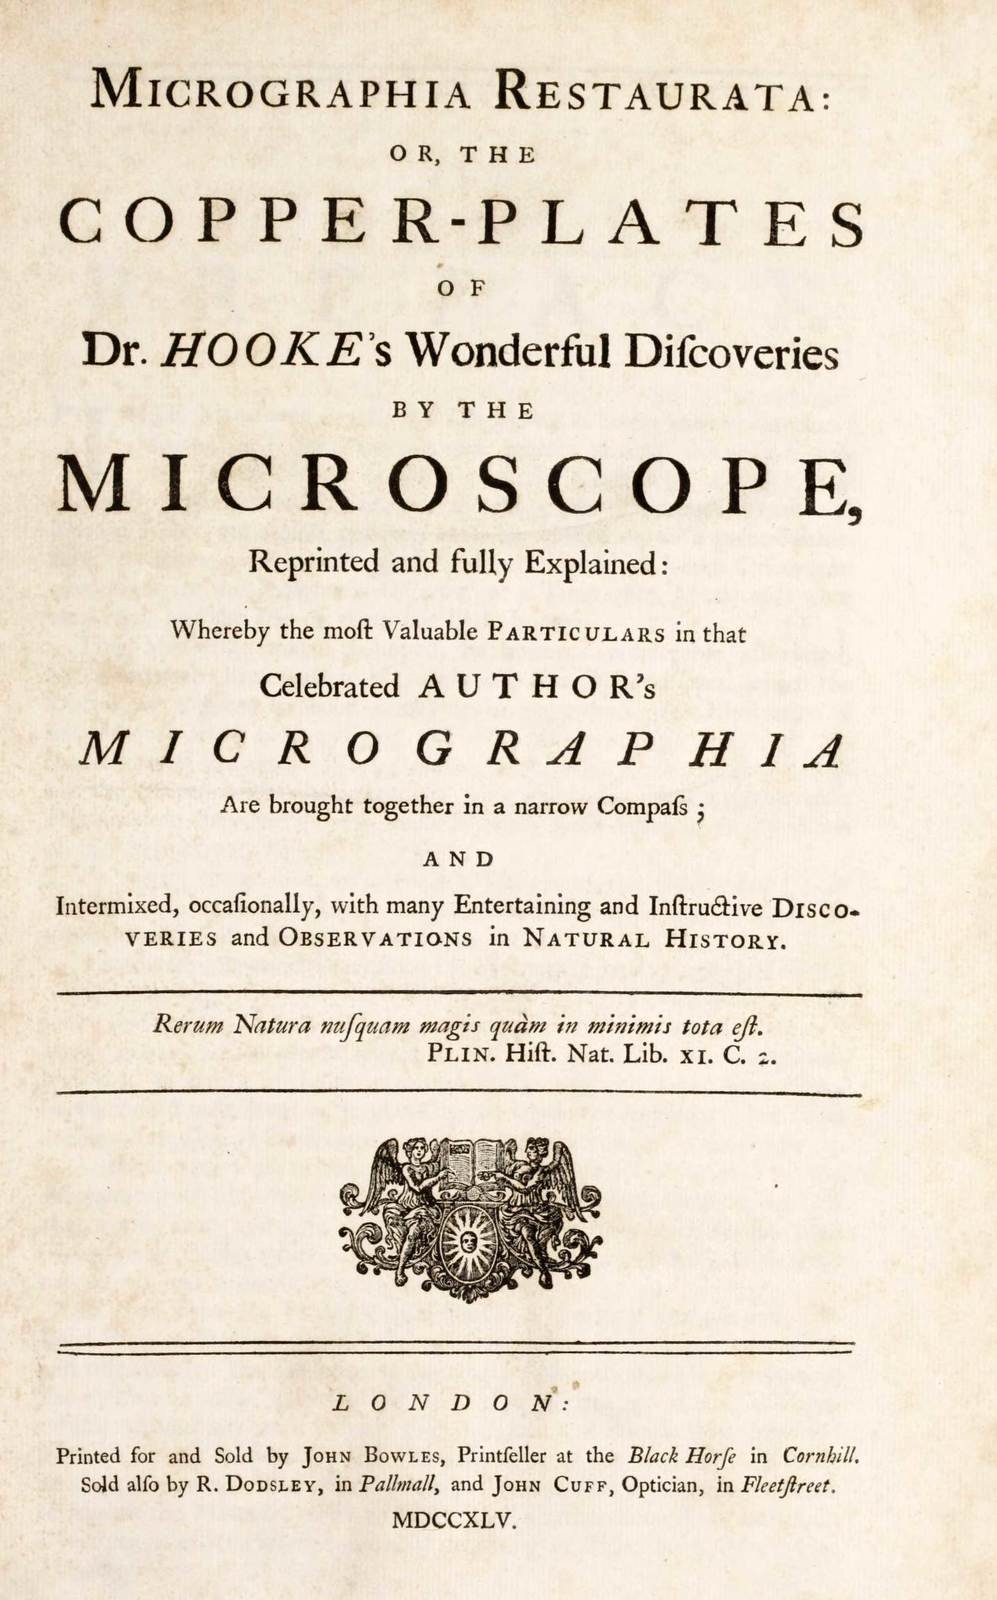 Micrographia restaurata, or, The copper plates of Dr. Hooke's wonderful discoveries by the microscope, reprinted and fully explained : whereby the most valuable particulars in that celebrated author's Micrographia are brought together in a narrow compass; and intermixed, occasionally, with many entertaining and instructive discoveries and observations in natural history., Robert Hooke, Harold B. Lee Library, Public Domain Mark